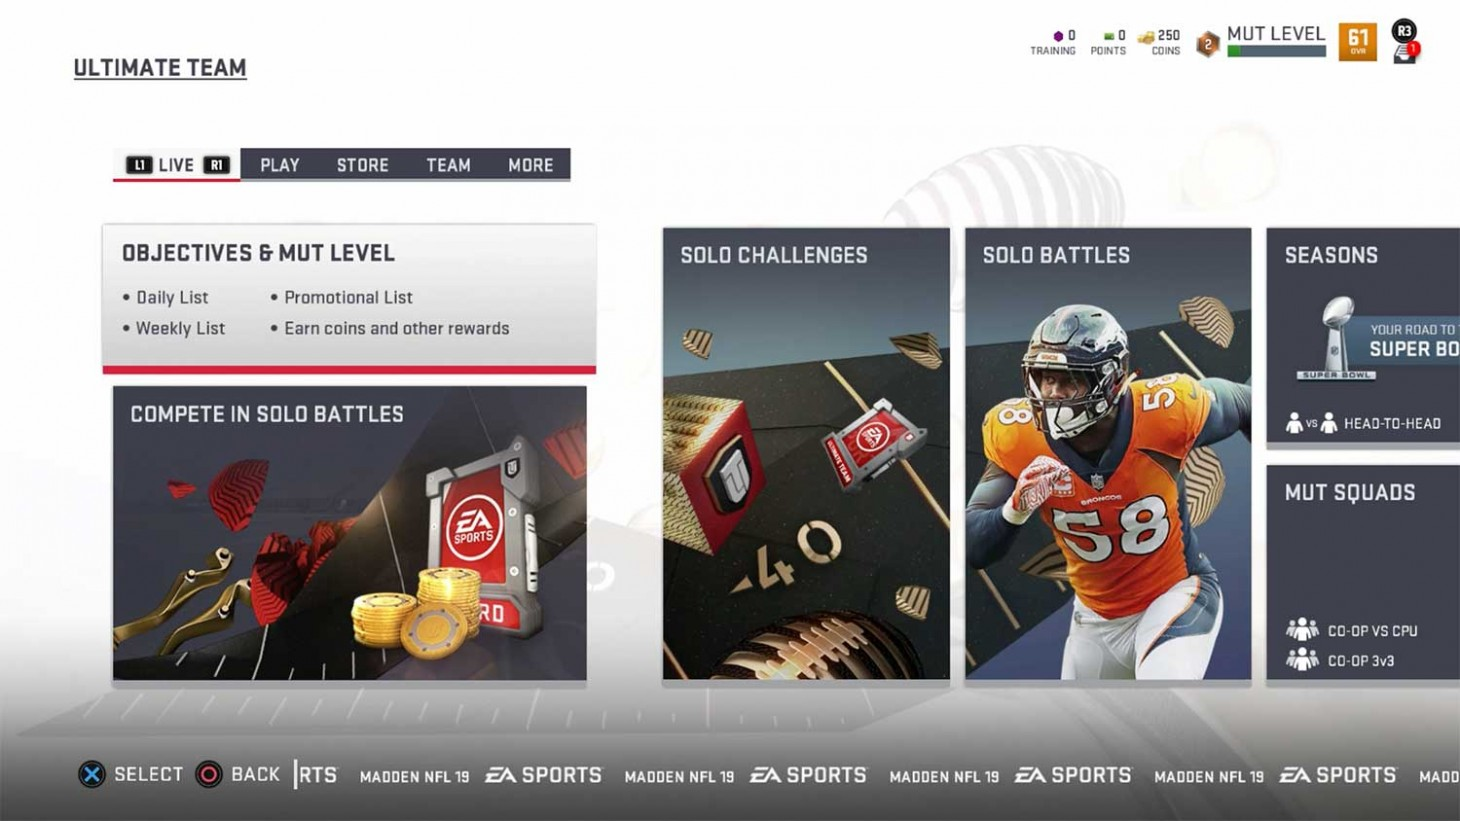 Powering Up In Madden 19 Ultimate Team  Game Informer